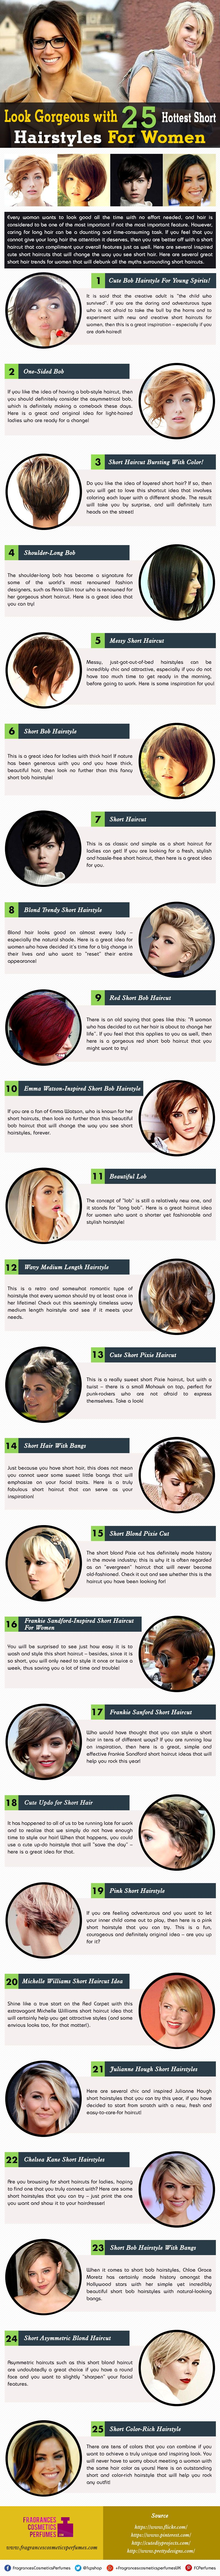 Look Gorgeous with 25 Hottest Short Hairstyles for Women #infographic | Short  hairstyles for women, Short hair styles, Womens hairstyles